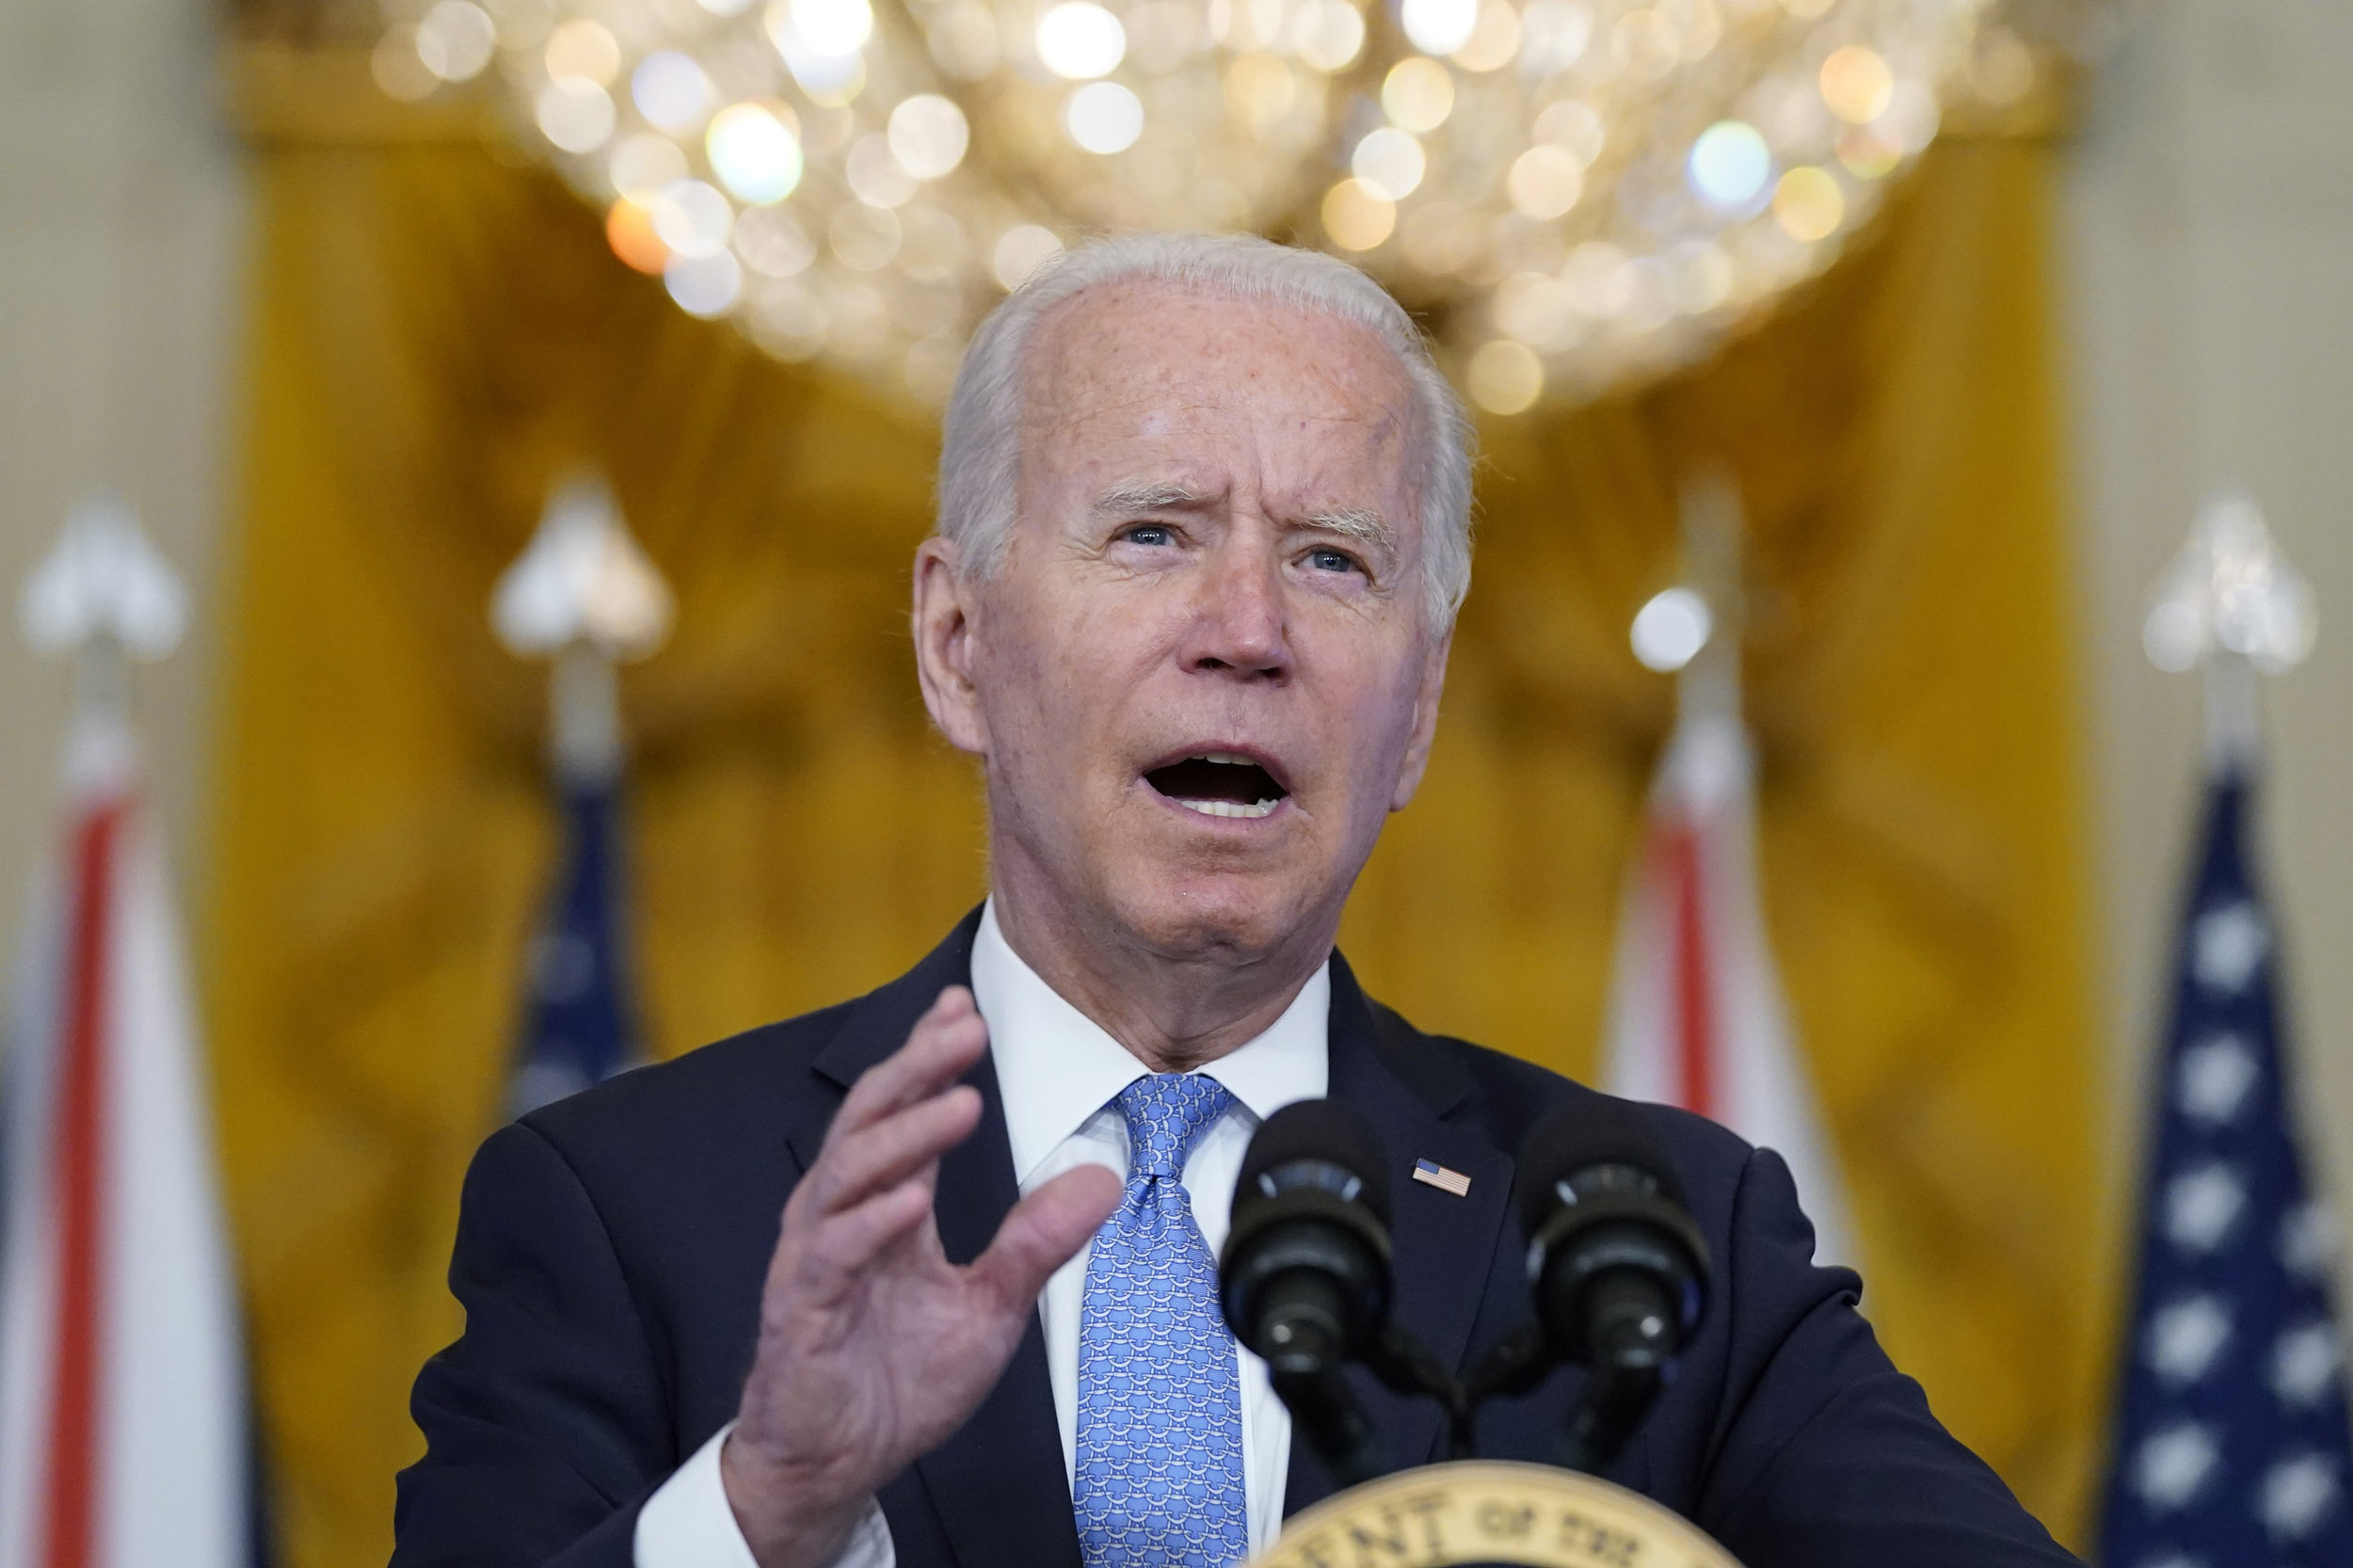 Biden outlines 'a fair shot' for the middle class in economic speech